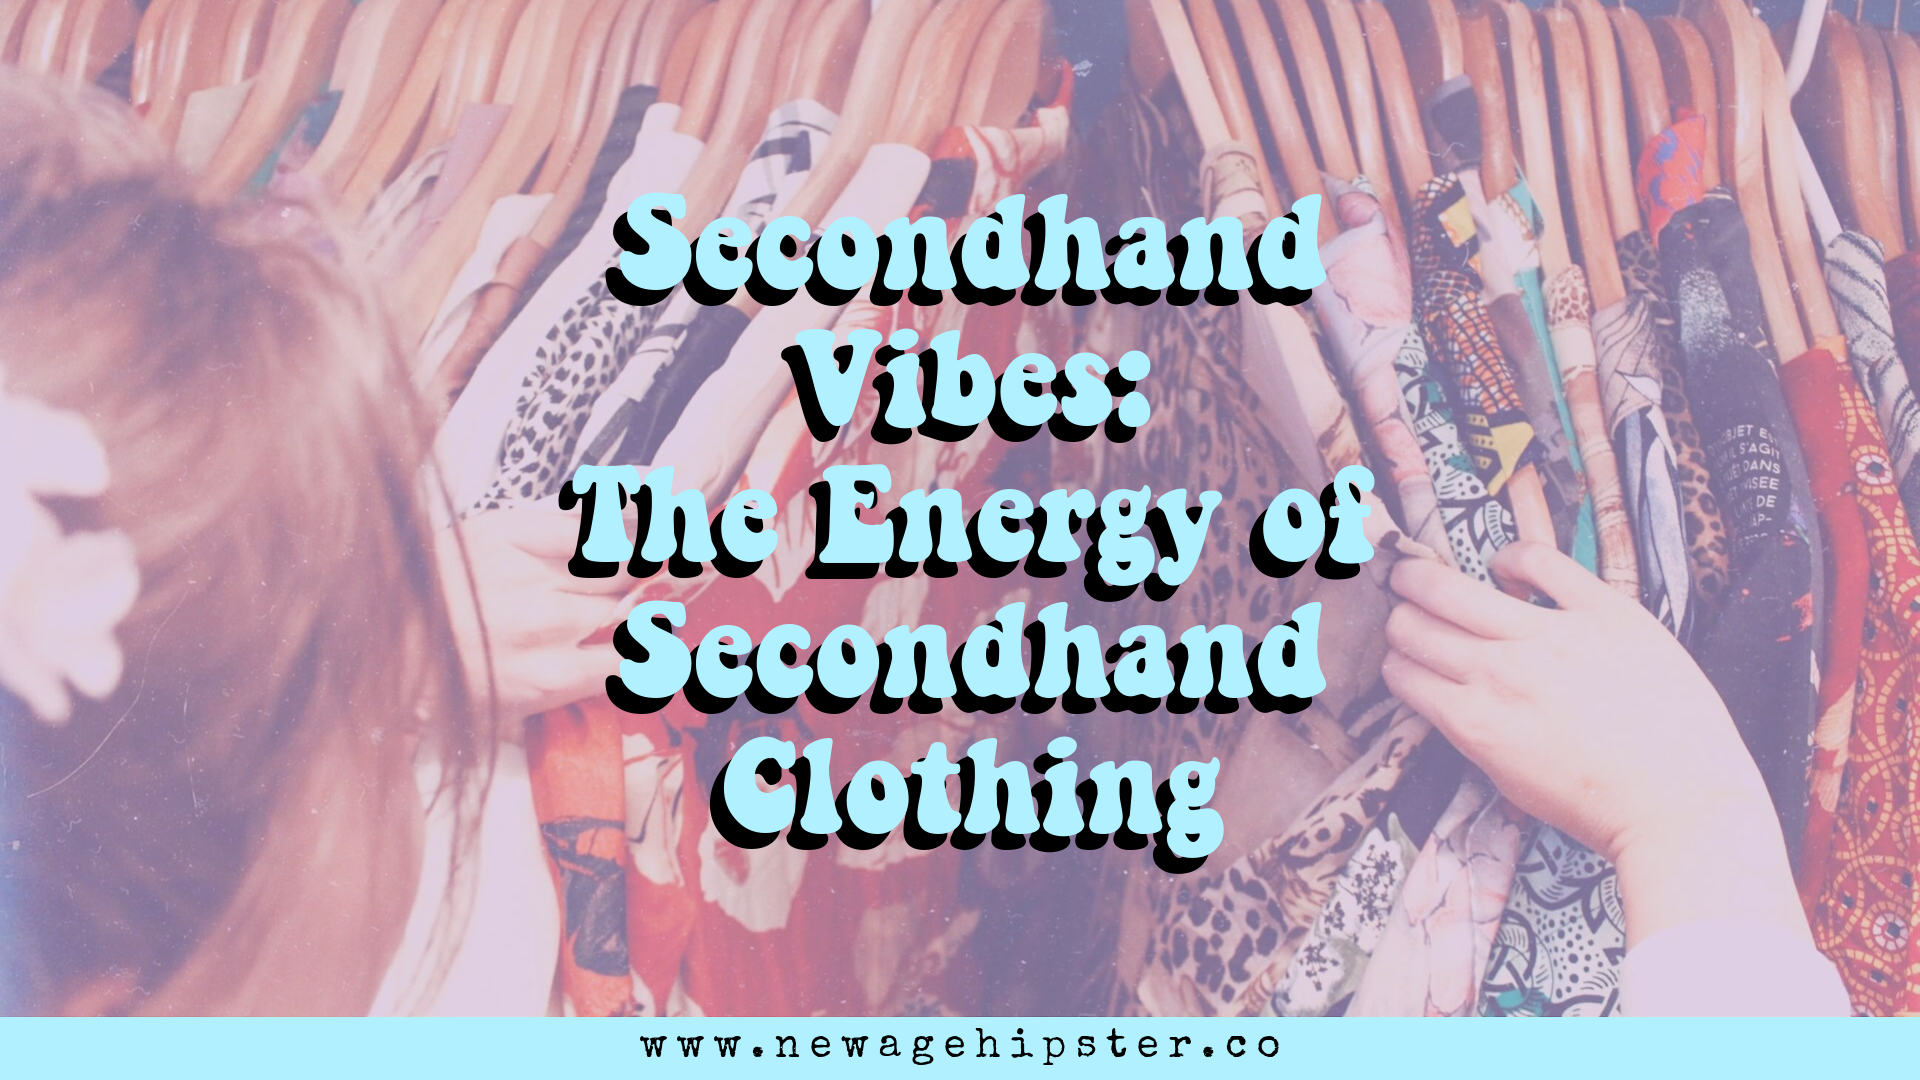 The Energy of Secondhand clothing